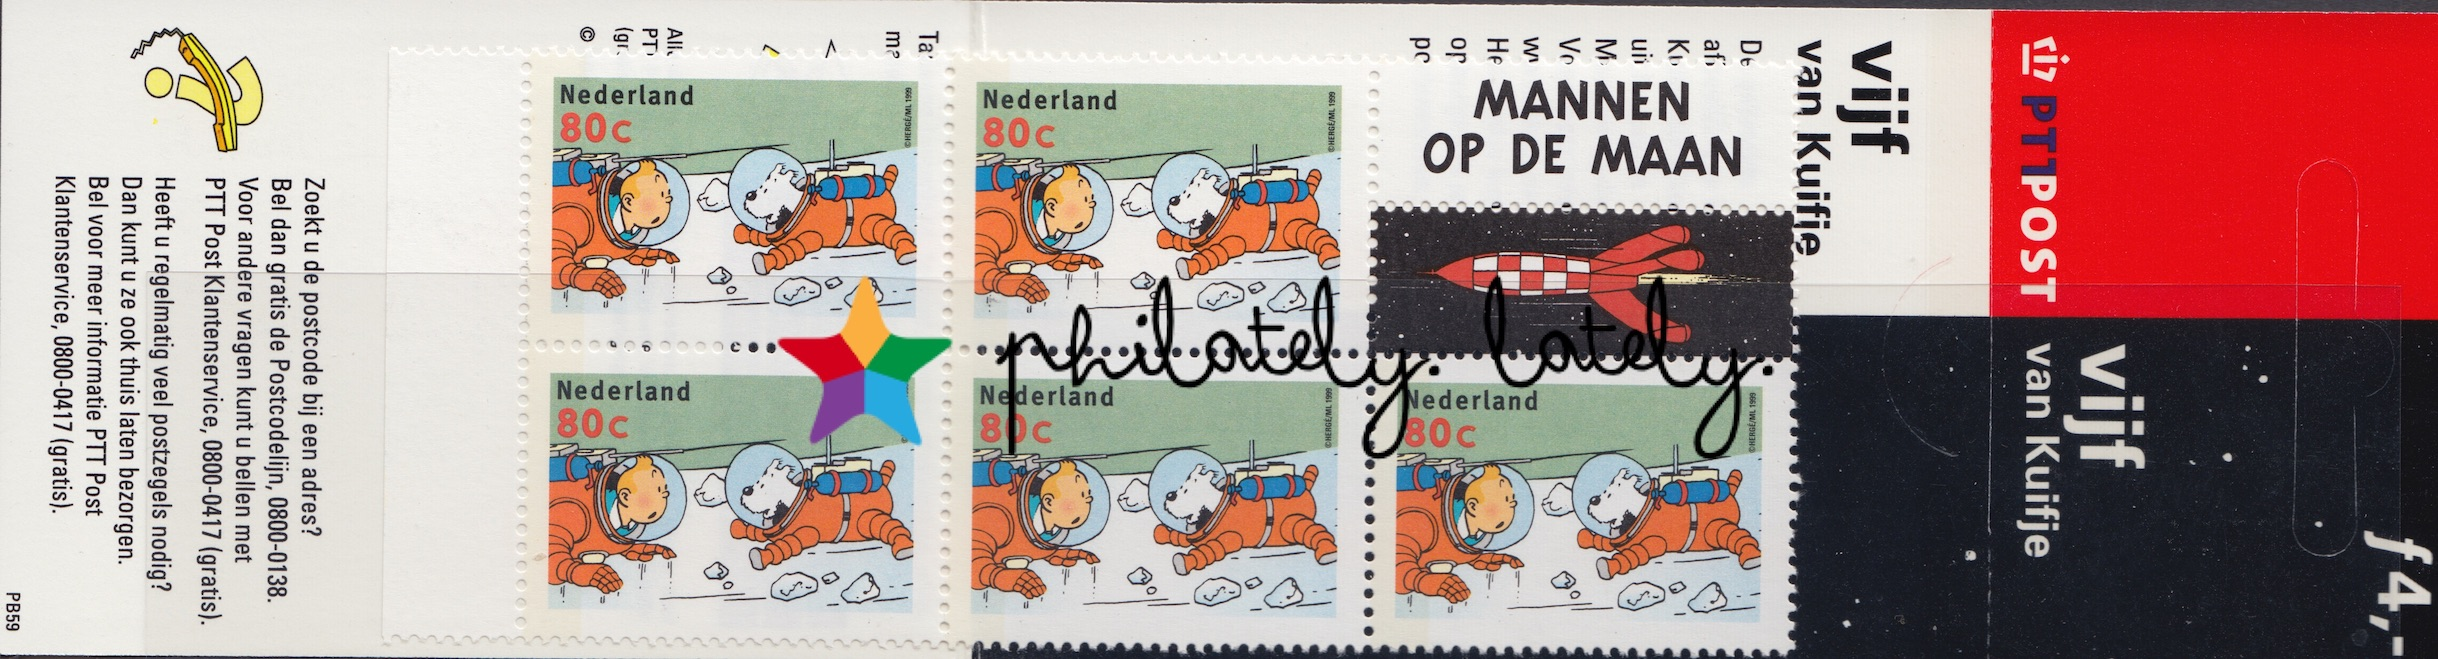 Tintin on Stamps – Philately  Lately